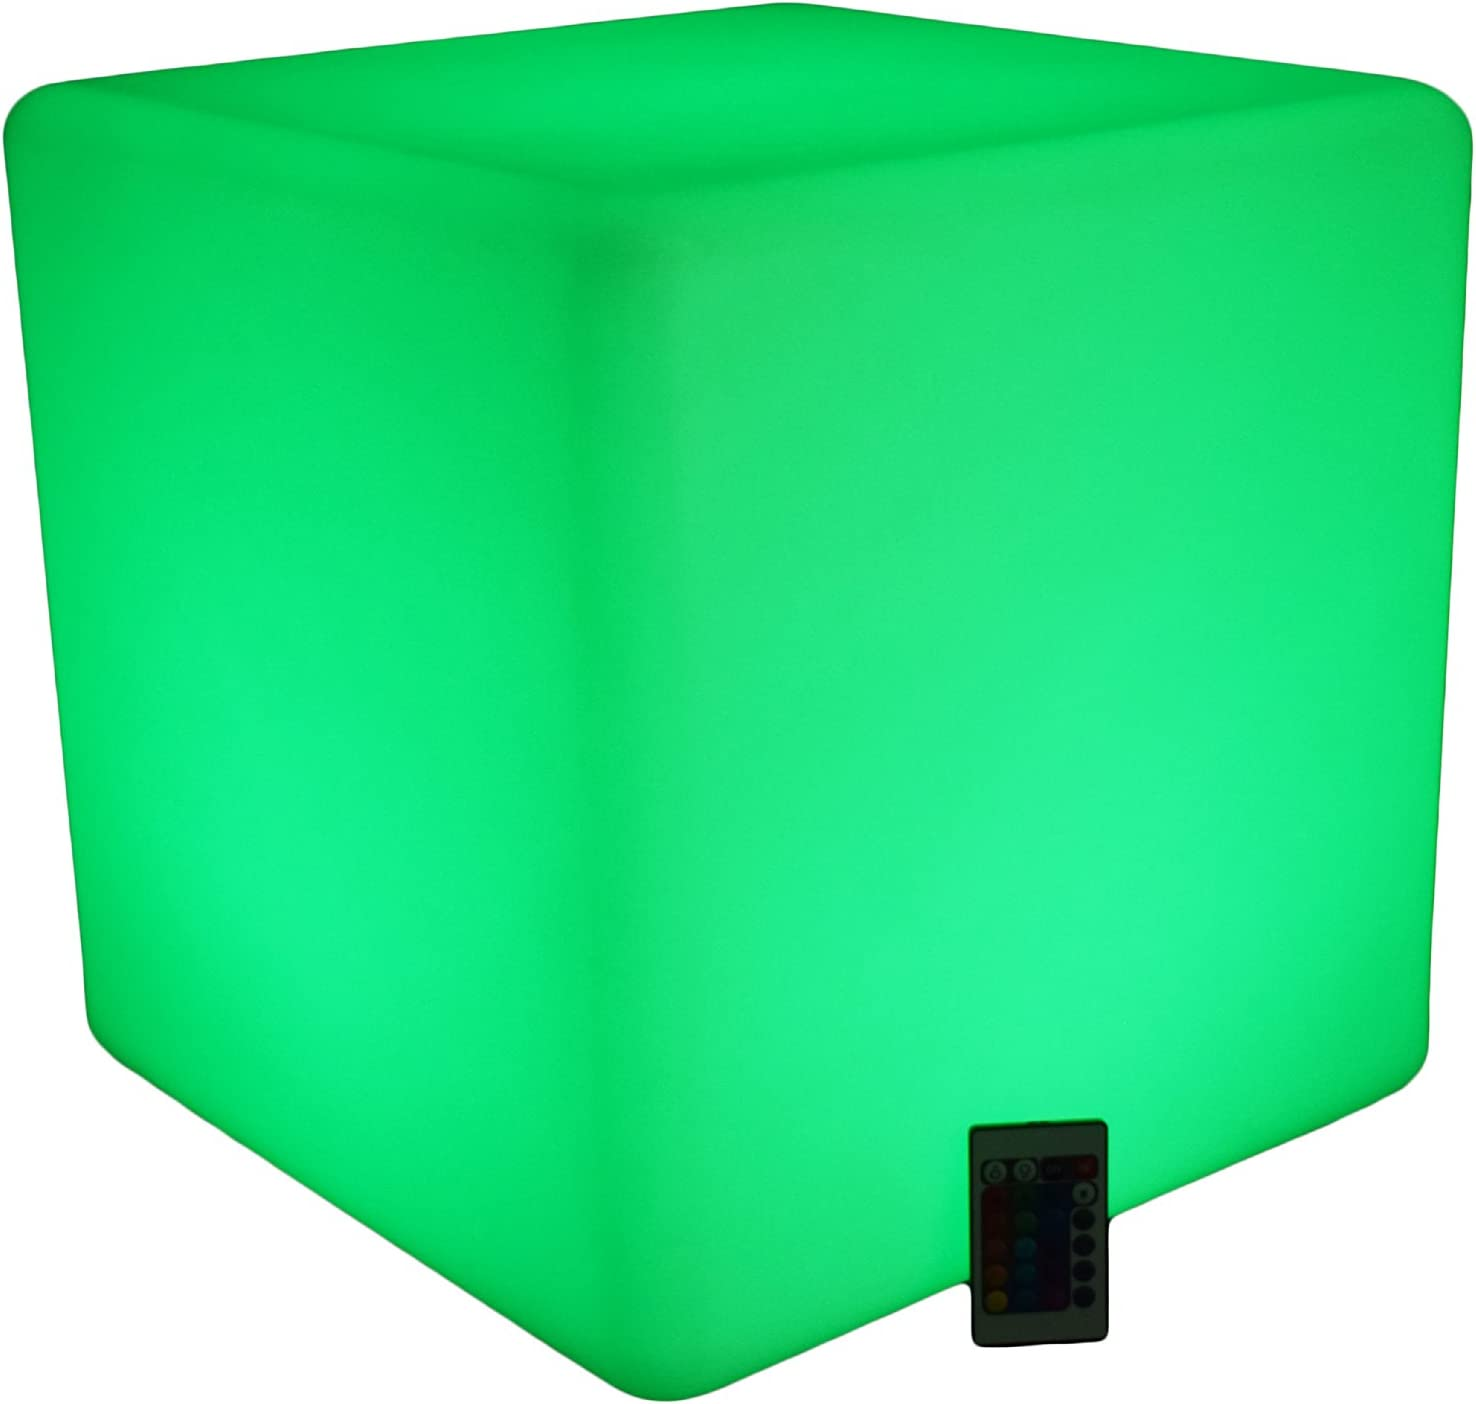 Illuminating Seating Cube - End Table - Ottoman - LED Cube 16 Color Changing Furniture with Remote Control - Cordless, Waterproof, Rechargeable - Glow Light up Furniture - for Indoor/Outdoor